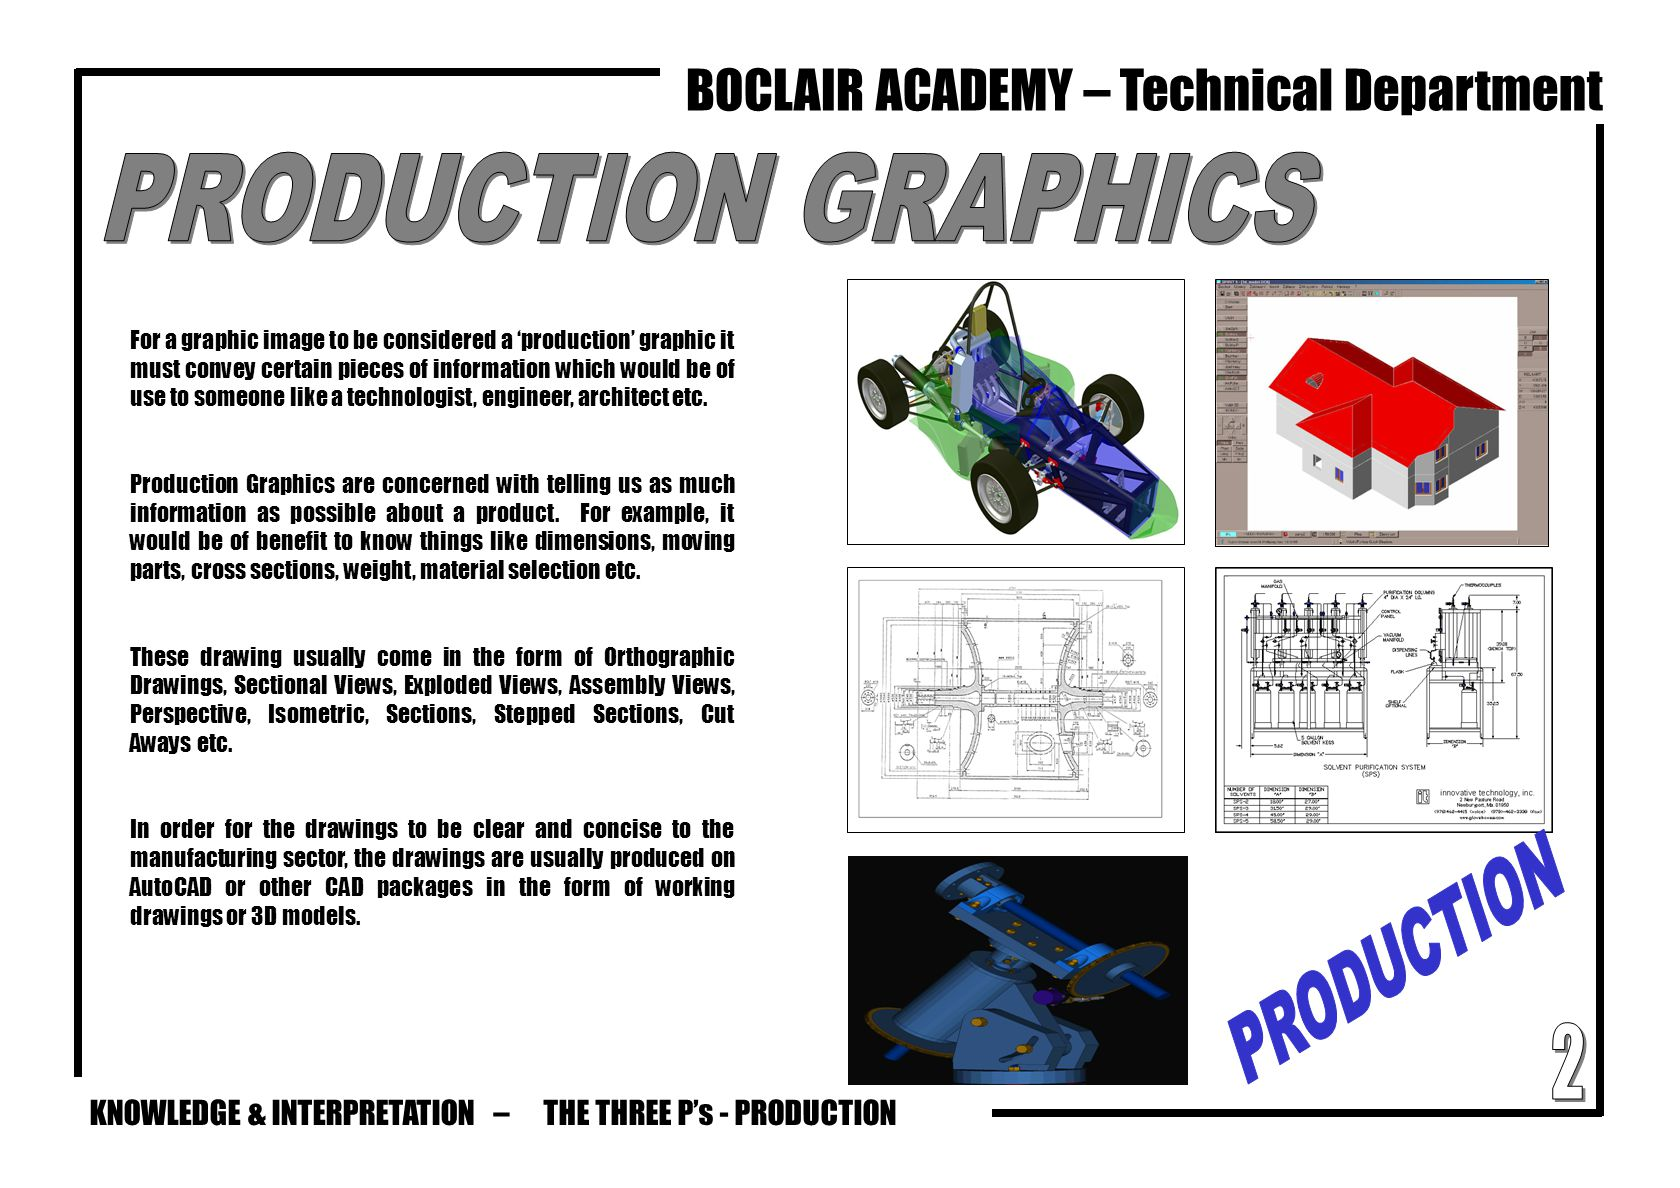 KNOWLEDGE & INTERPRETATION – BOCLAIR ACADEMY – Technical Department THE THREE P's - PRODUCTION For a graphic image to be considered a 'production' gra